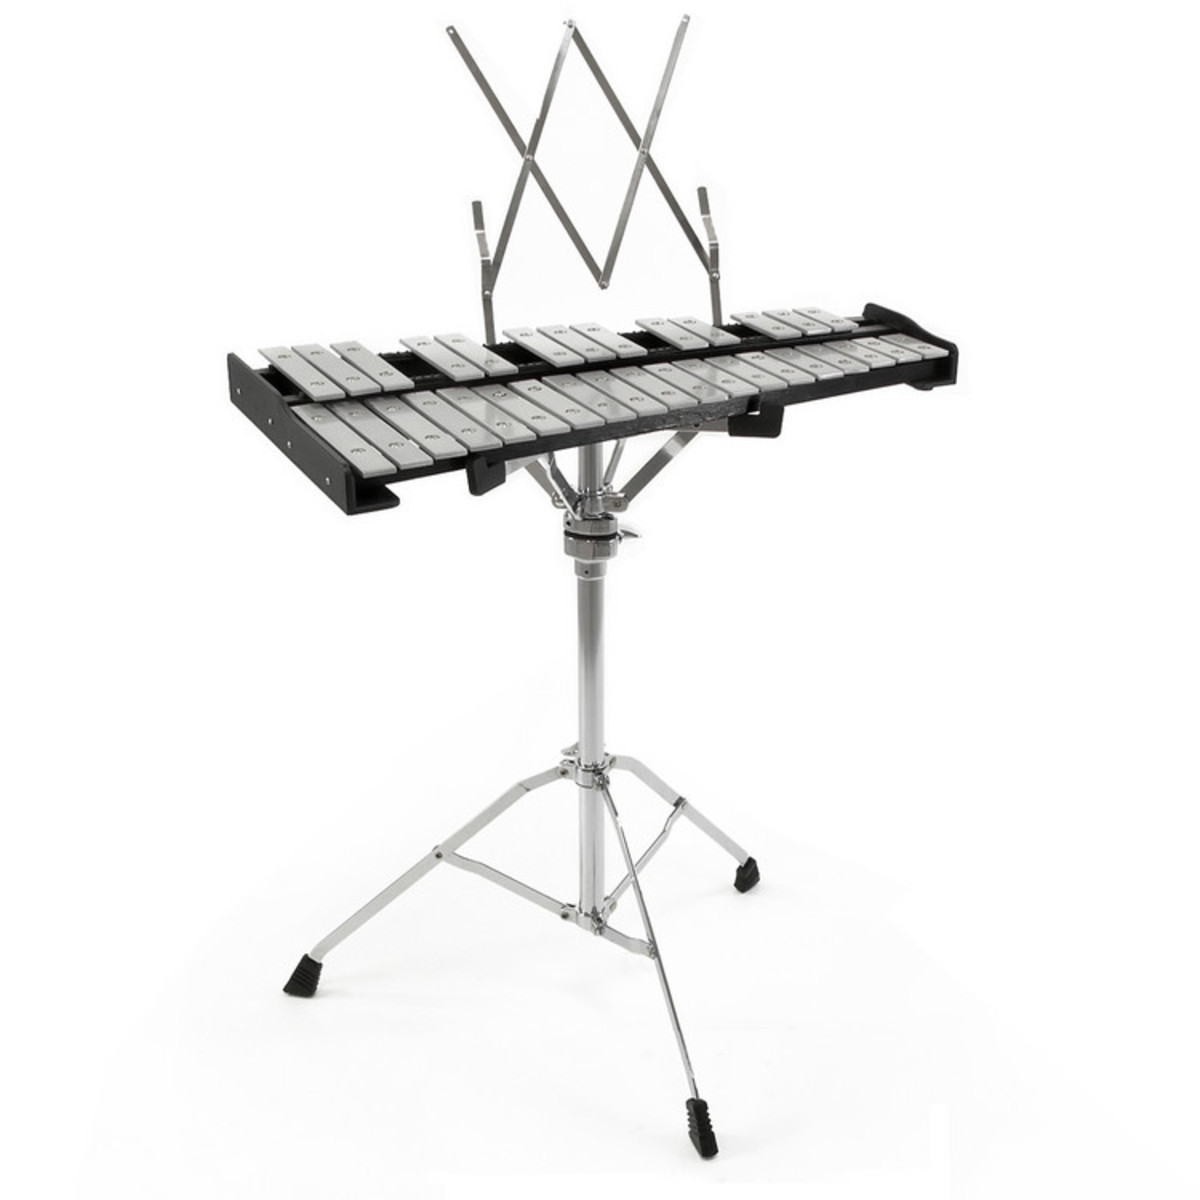 32 Note Orchestral Glockenspiel by Gear4music with Stand